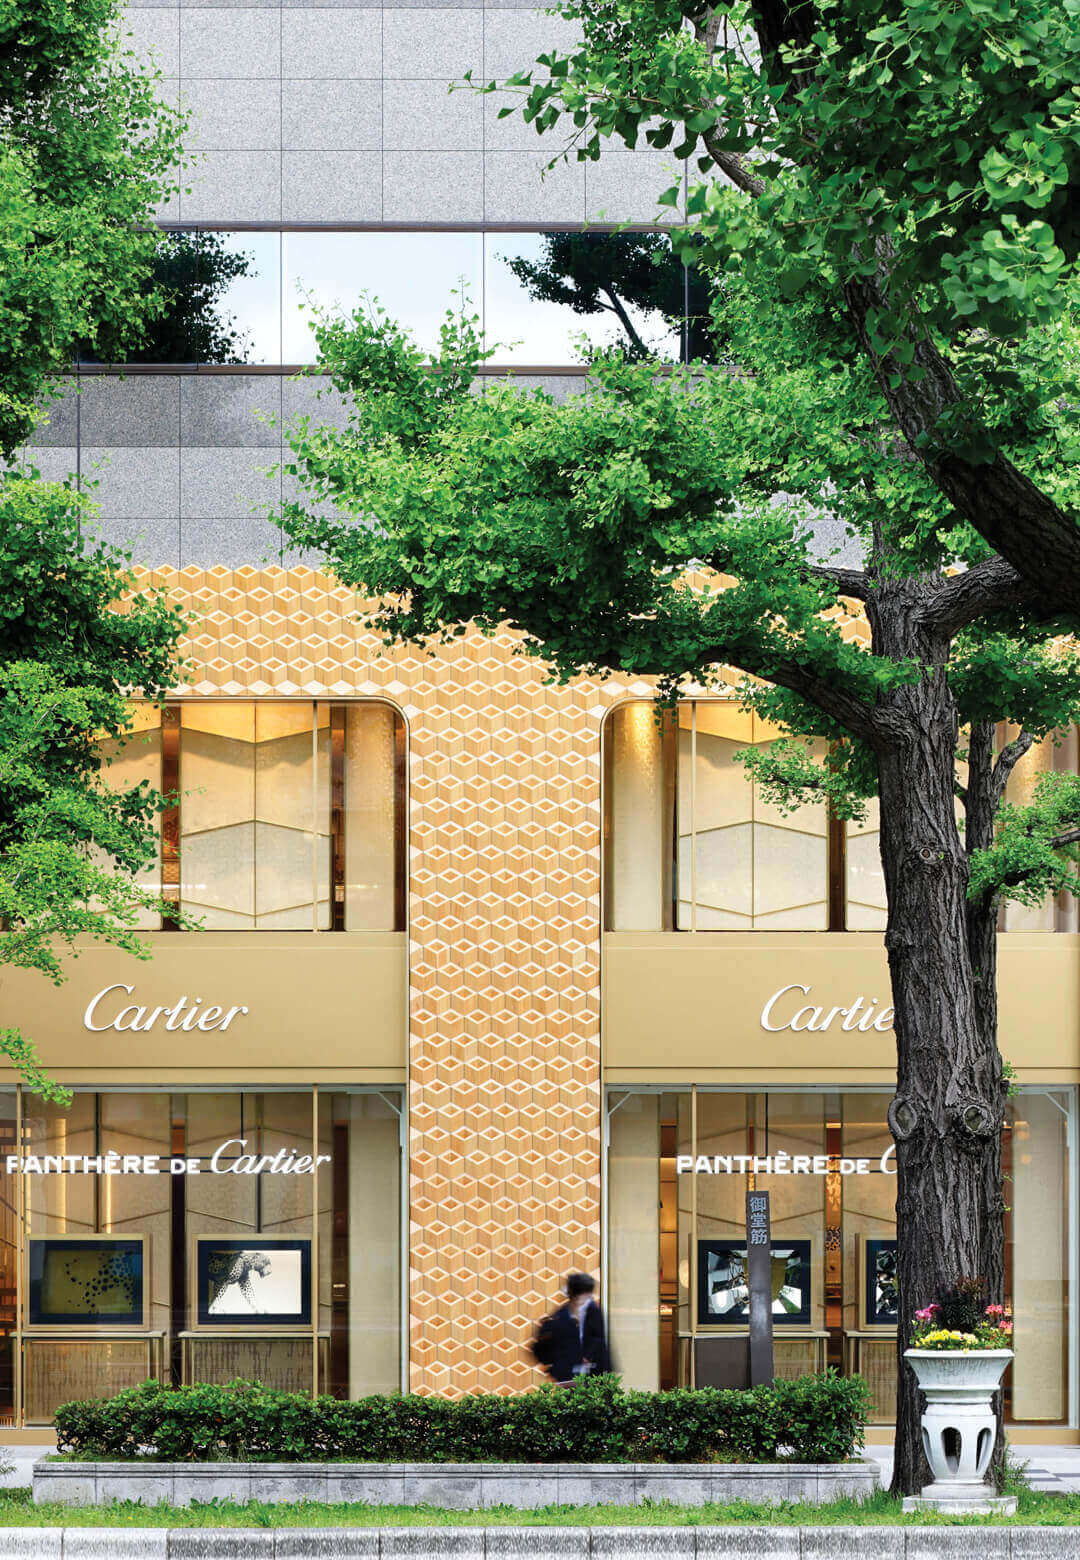 Klein Dytham architecture has developed a new diamond patterned wooden facade for Cartier's Shinsaibashi store in Osaka, Japan | Cartier Façade, Osaka | Klein Dytham architecture | STIRworld